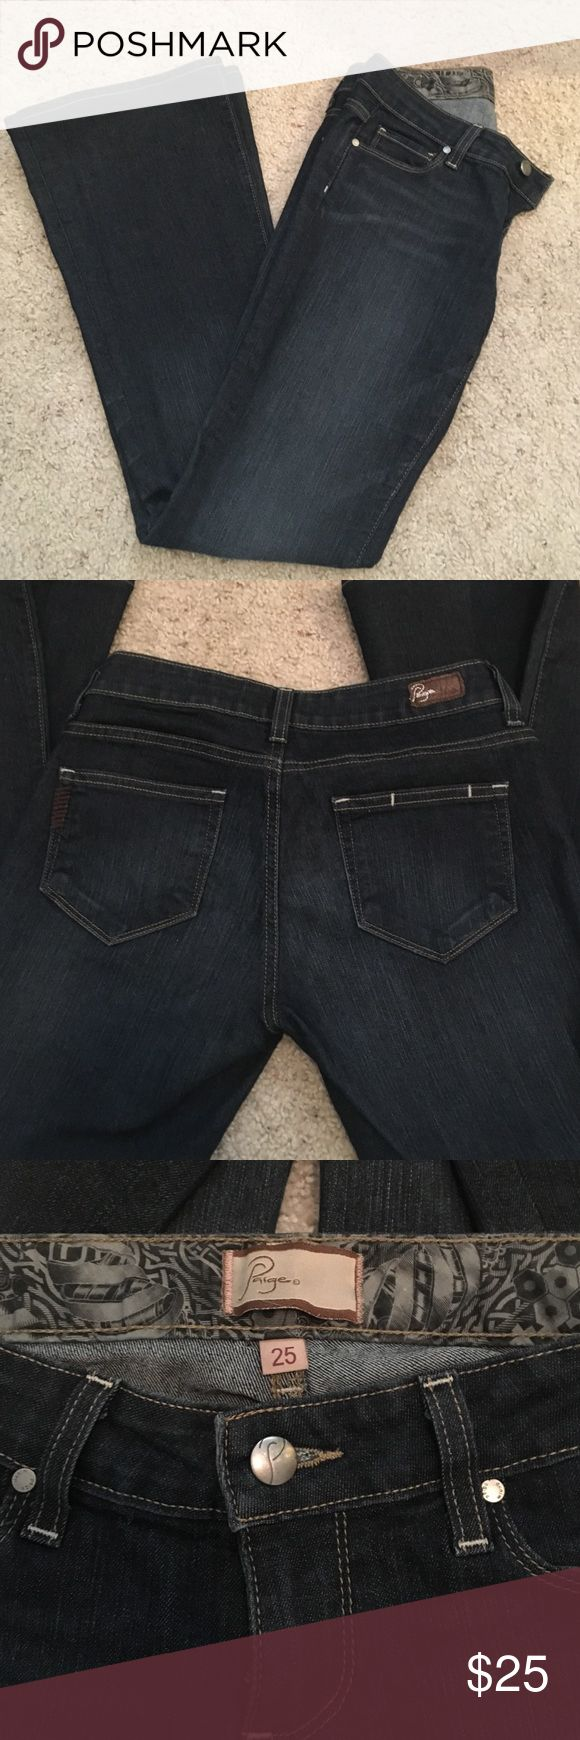 Paige jeans. Size 25. Bell bottoms Worn once Paige jeans. Size 25 bell bottoms. Paige Jeans Jeans Flare & Wide Leg